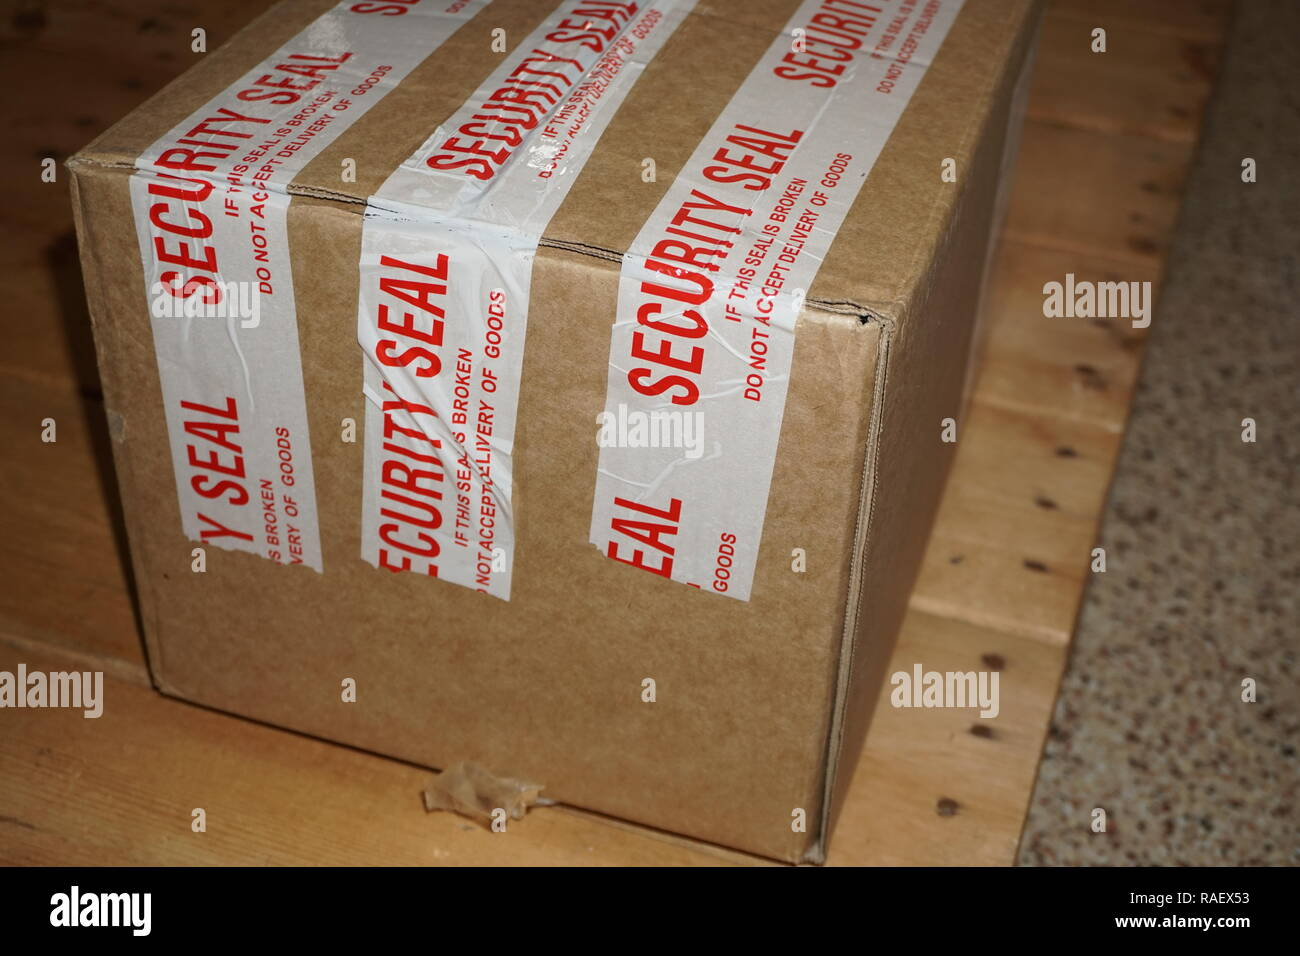 shipping box with security seal tape 'if this seal is broken, do not accept delivery of goods' - Stock Image